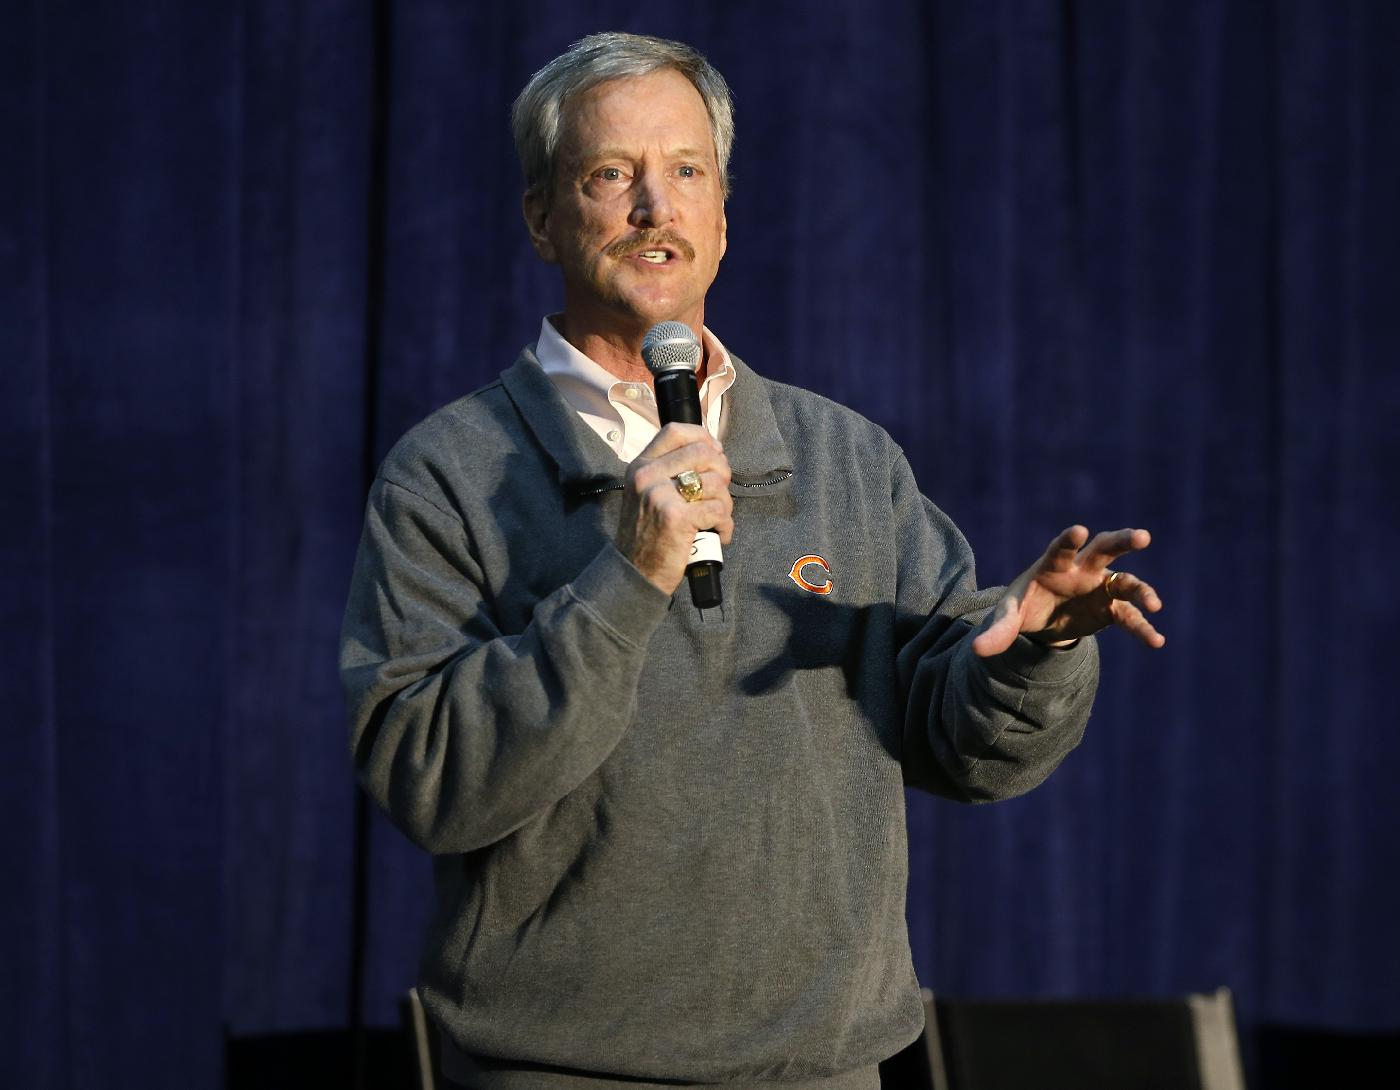 Chicago Bears chairman George McCaskey speaks during a safety clinic hosted by the NFL and the Chicago Bears for the mothers of youth football players on Tuesday, Oct. 29, 2013, at Halas Hall in Lake Forest, Ill